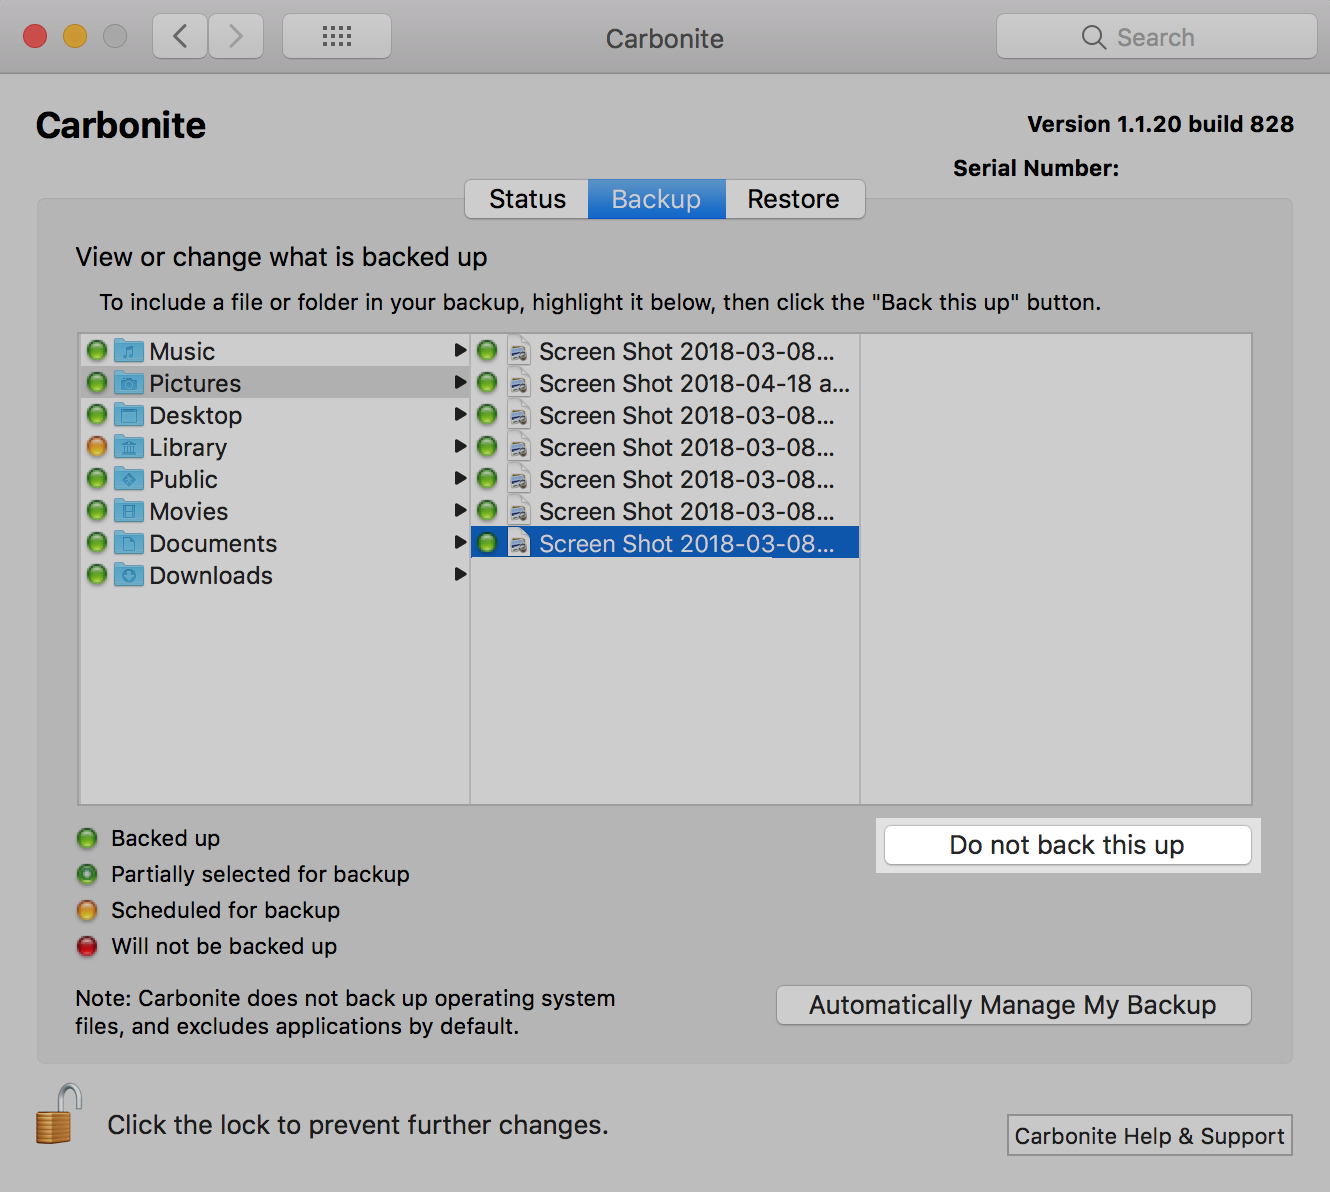 Carbonite 1.x for Mac: With the file selected, click Do not back this up.